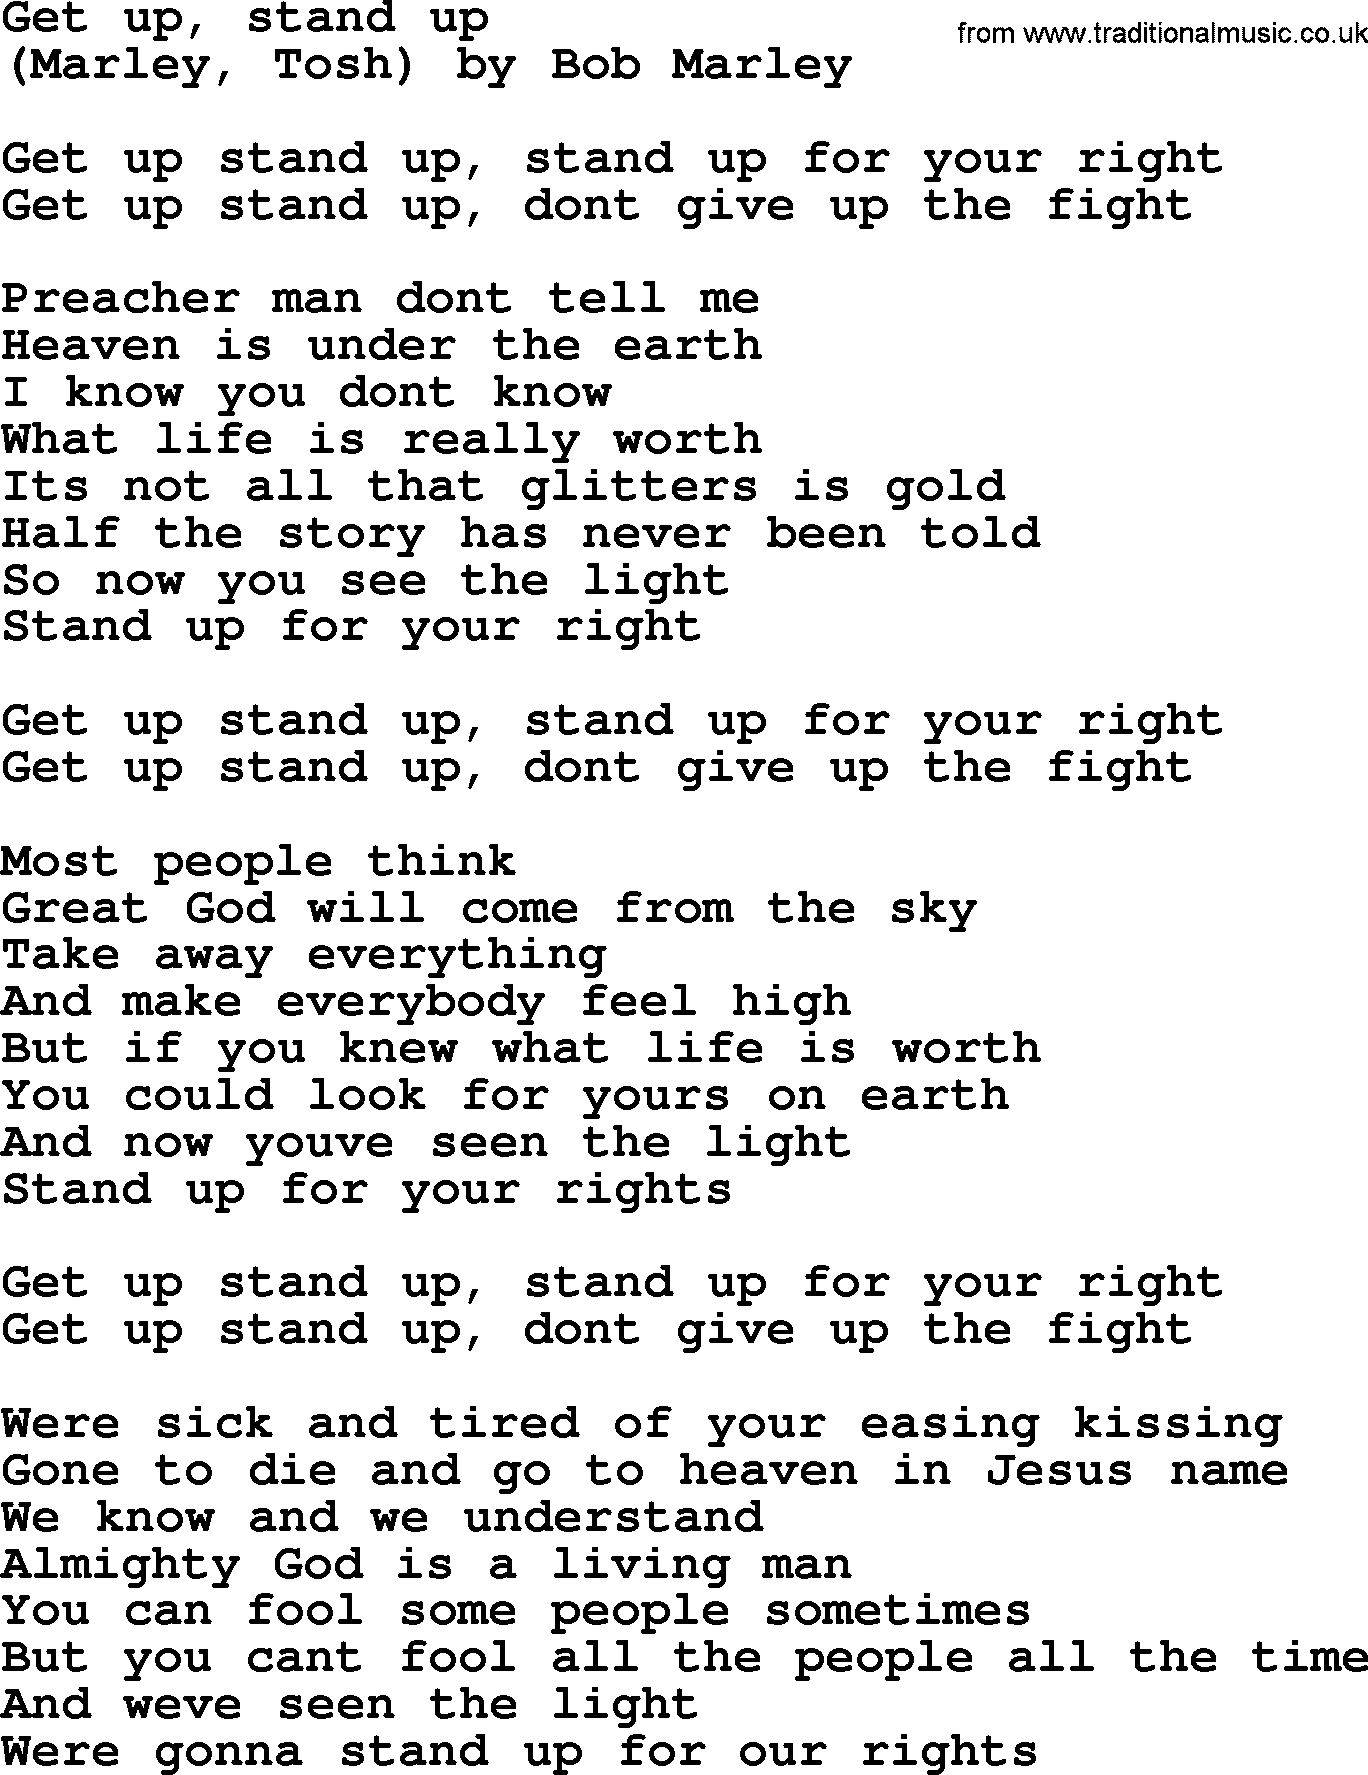 Bruce Springsteen Song Get Up Stand Up Lyrics